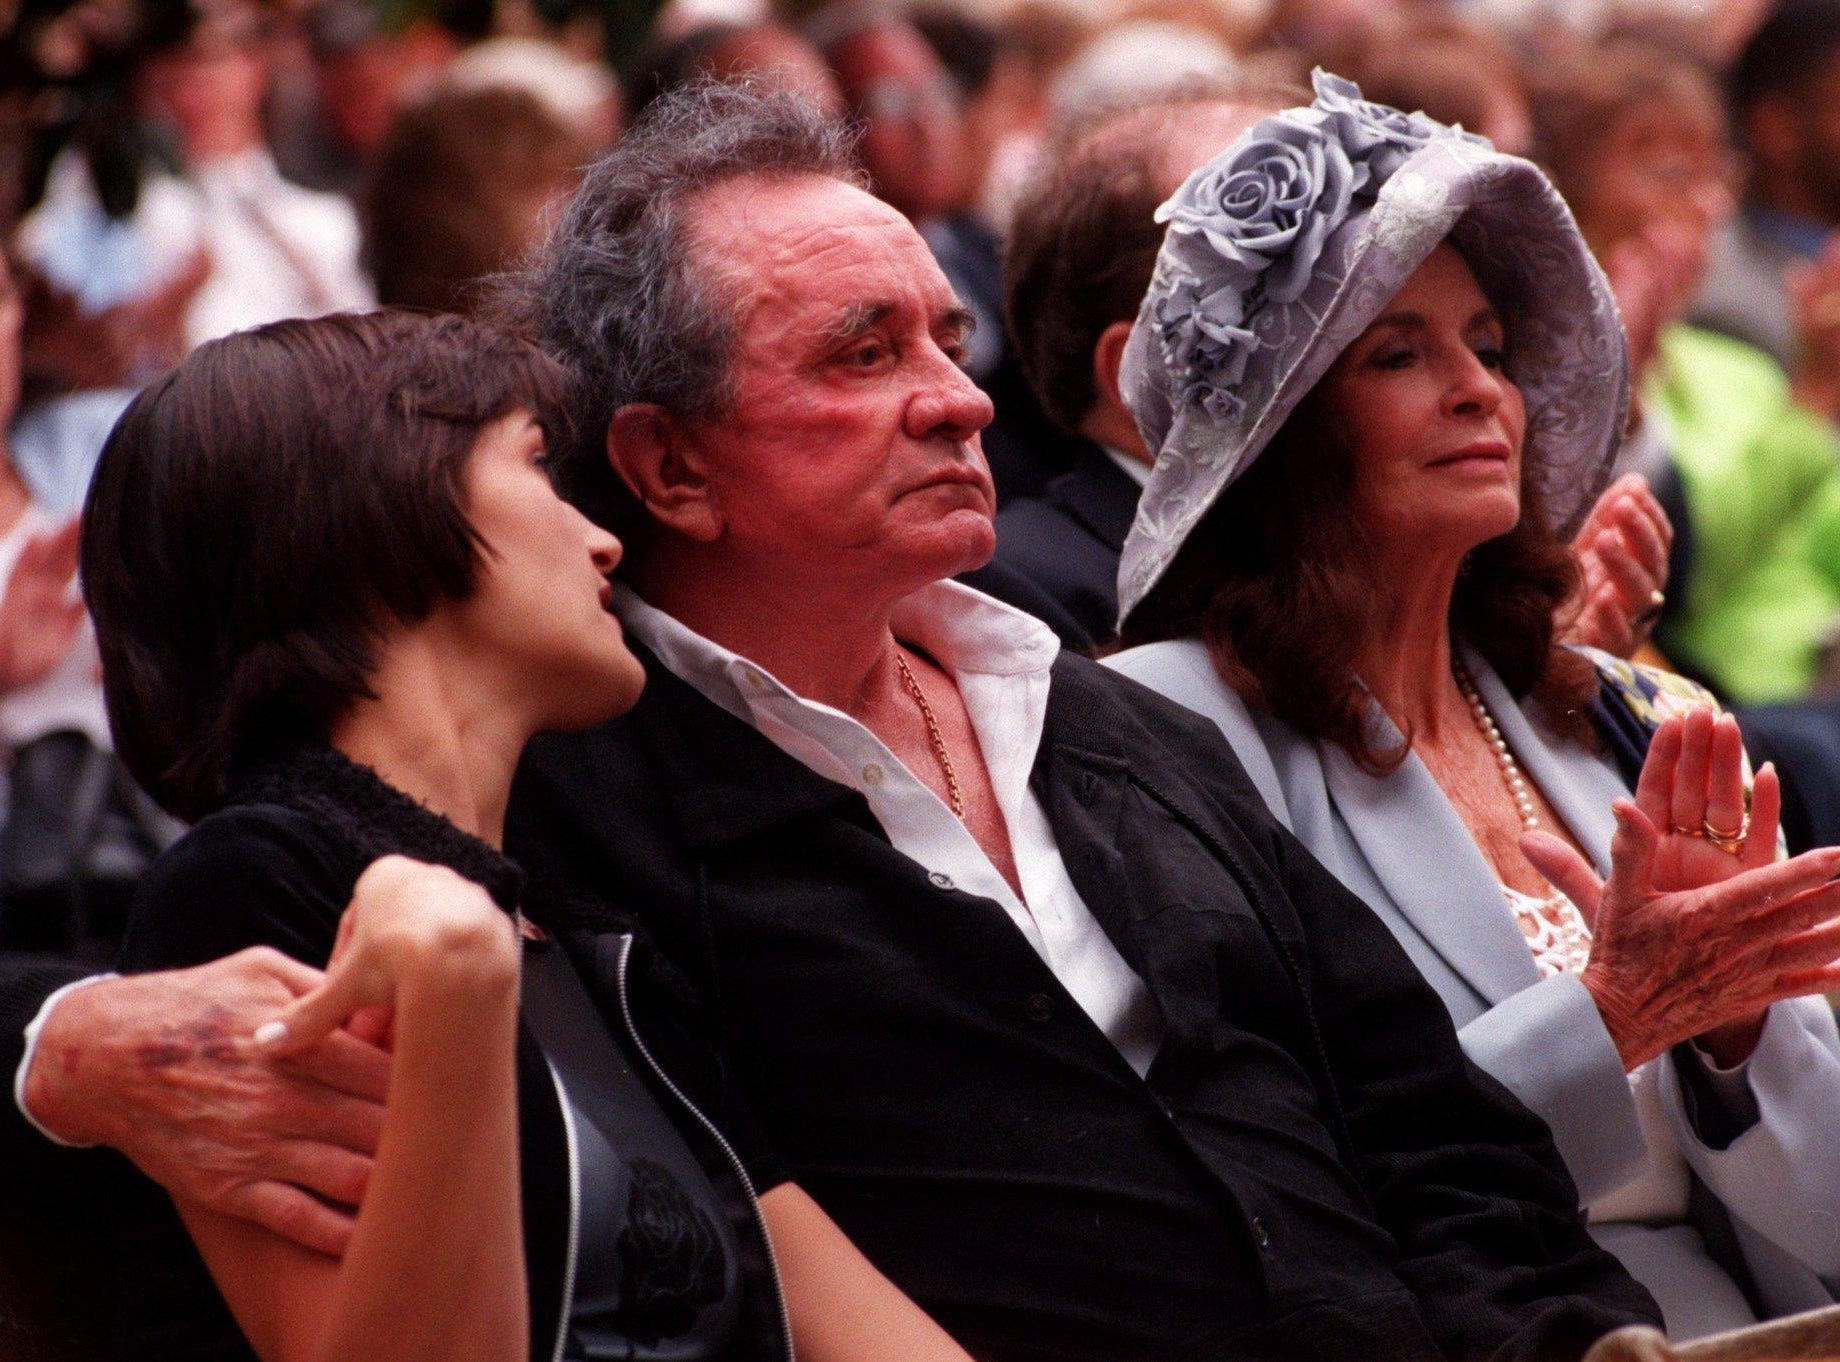 Johnny Cash, June Cash and their granddaughter Tiffany Lowe attend Vanderbilt's 1996 graduation to watch their grandson Jackson Routh receive his degree.